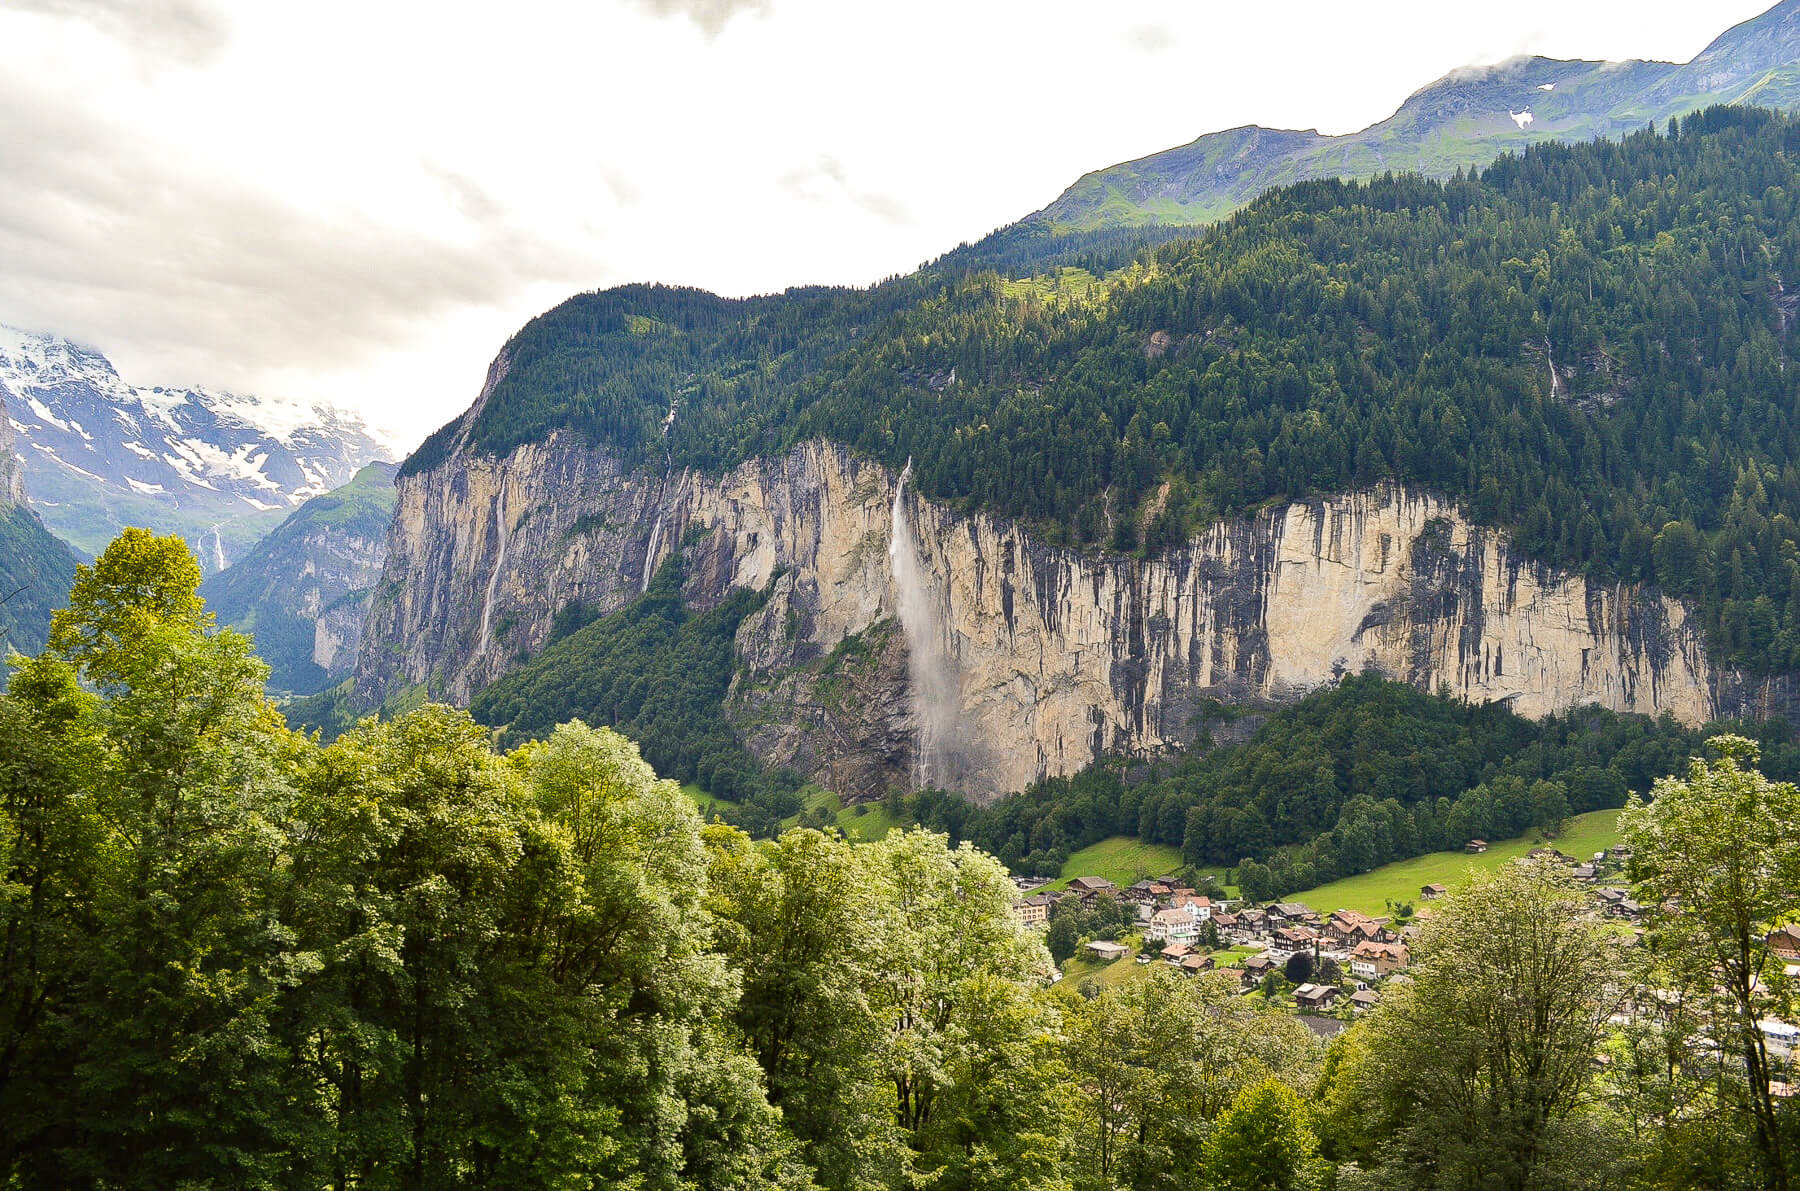 Lauterbrunnen Valley with waterfall pouring from cliff, small town and mountain peaks